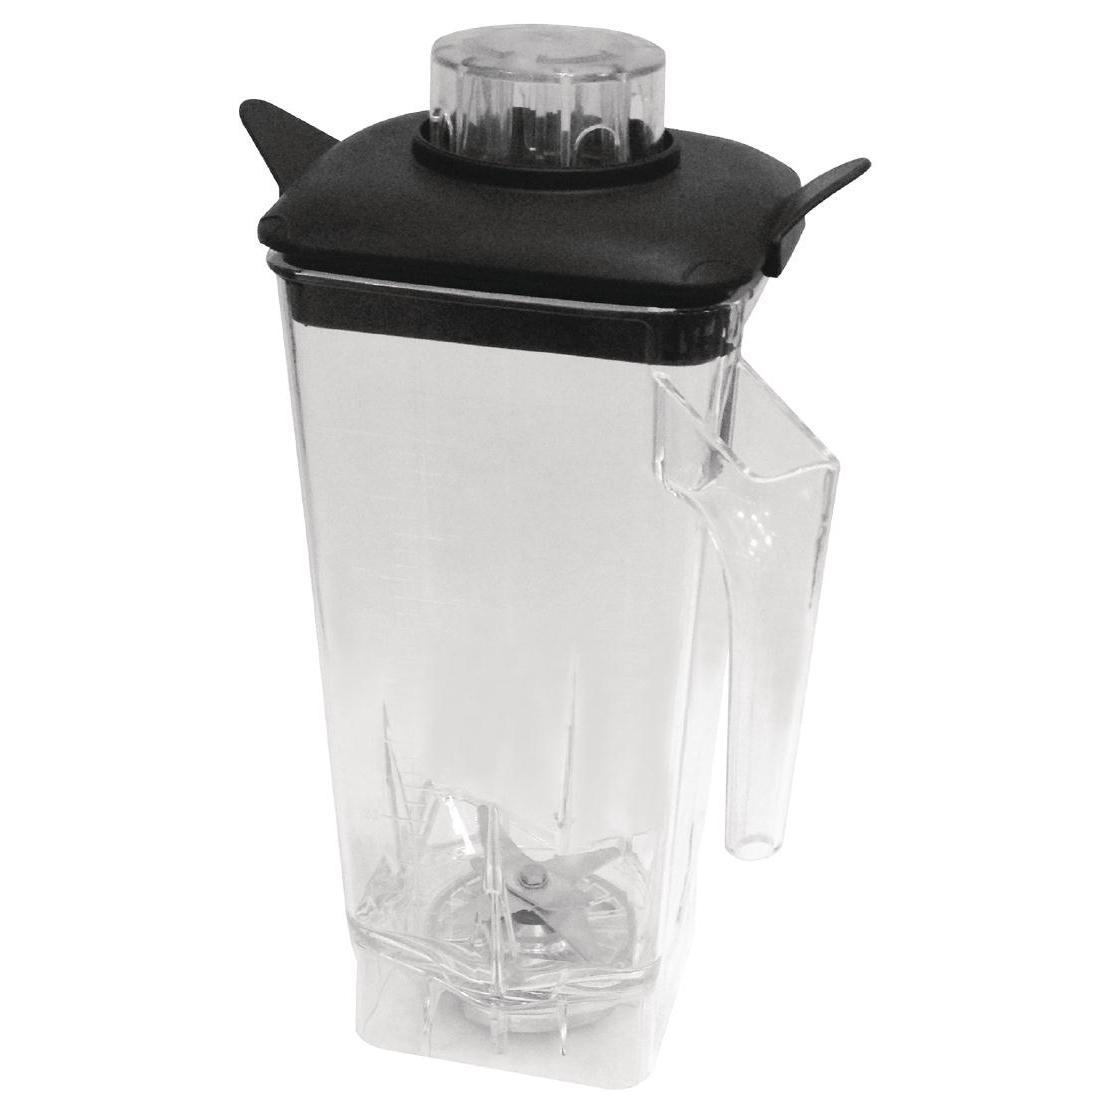 Buffalo Replacement Polycarbonate Jug with Blade - AD719